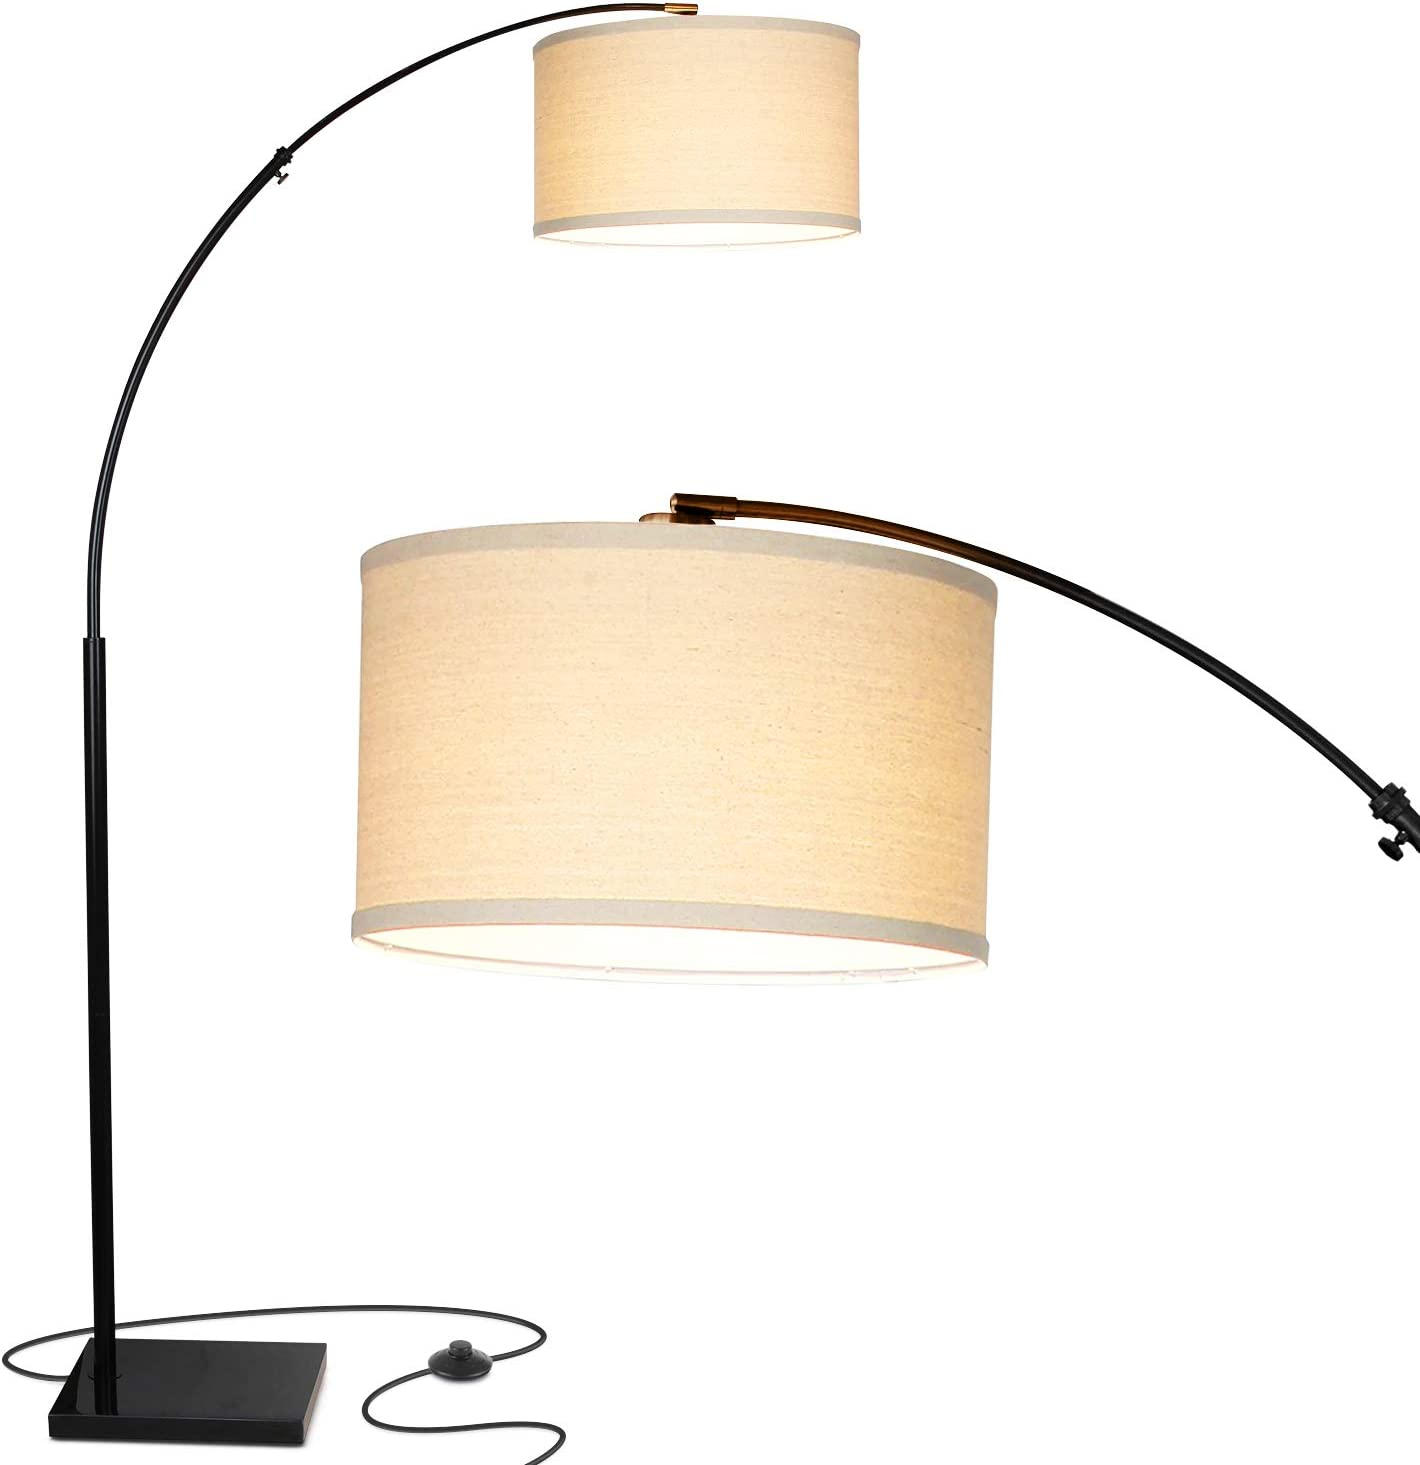 Brightech Logan LED Arc Floor Lamp with Marble Base – Living Room Lighting For Behind the Couch – Modern, Tall Standing Hanging Light – Black